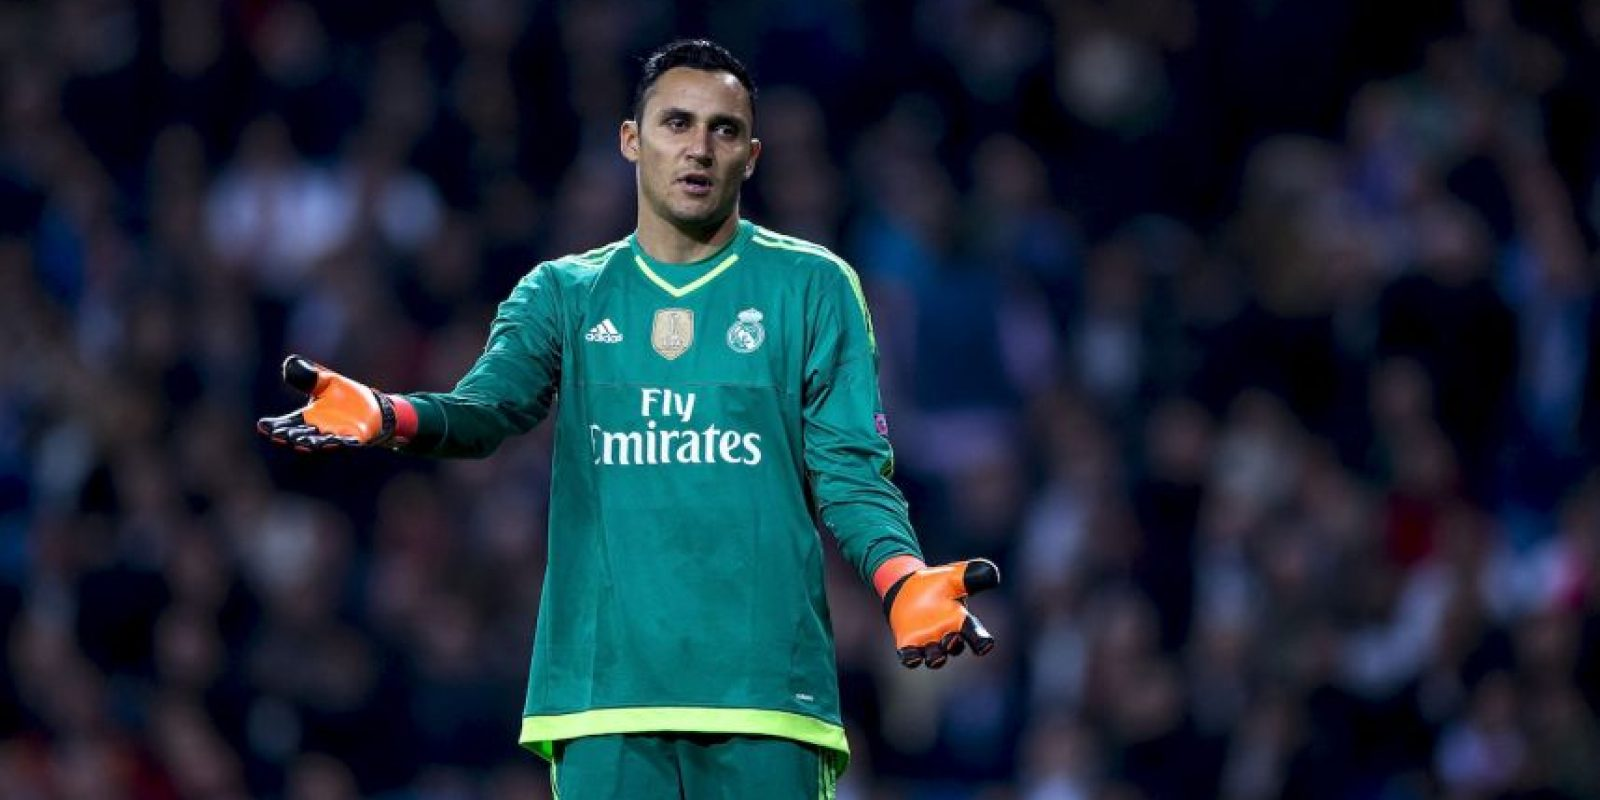 Keylor Navas (Costa Rica, Real Madrid, 28 años) Foto: Getty Images